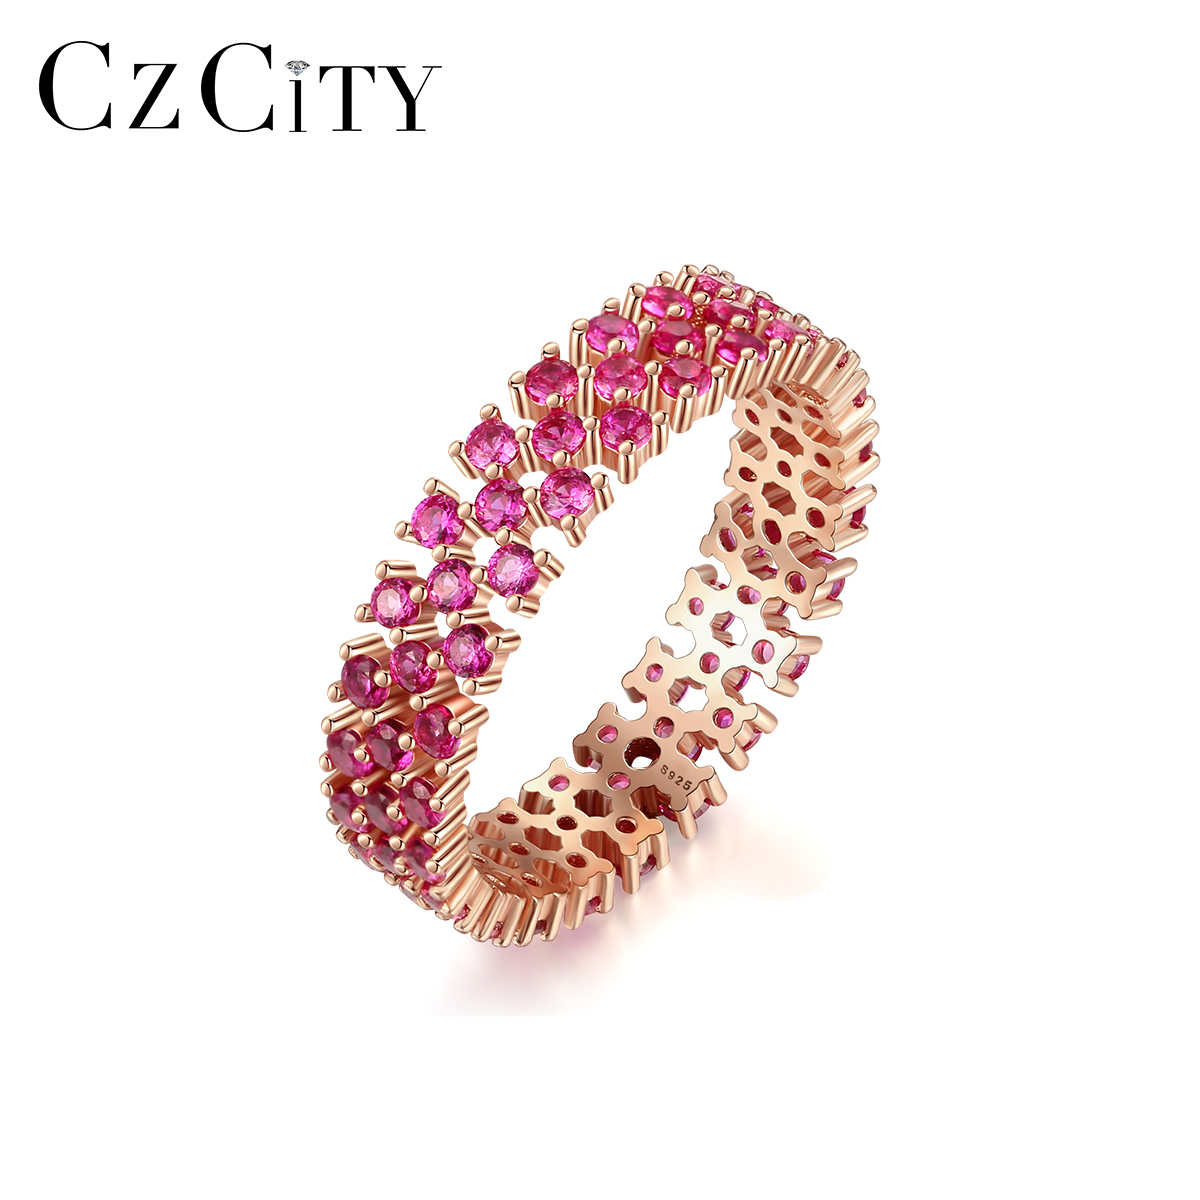 CZCITY Genuine 925 Sterling Silver Eternity Rings For Women Engagement Wedding Fine Jewelry Round Topaz Gemstone Anillos SR0299